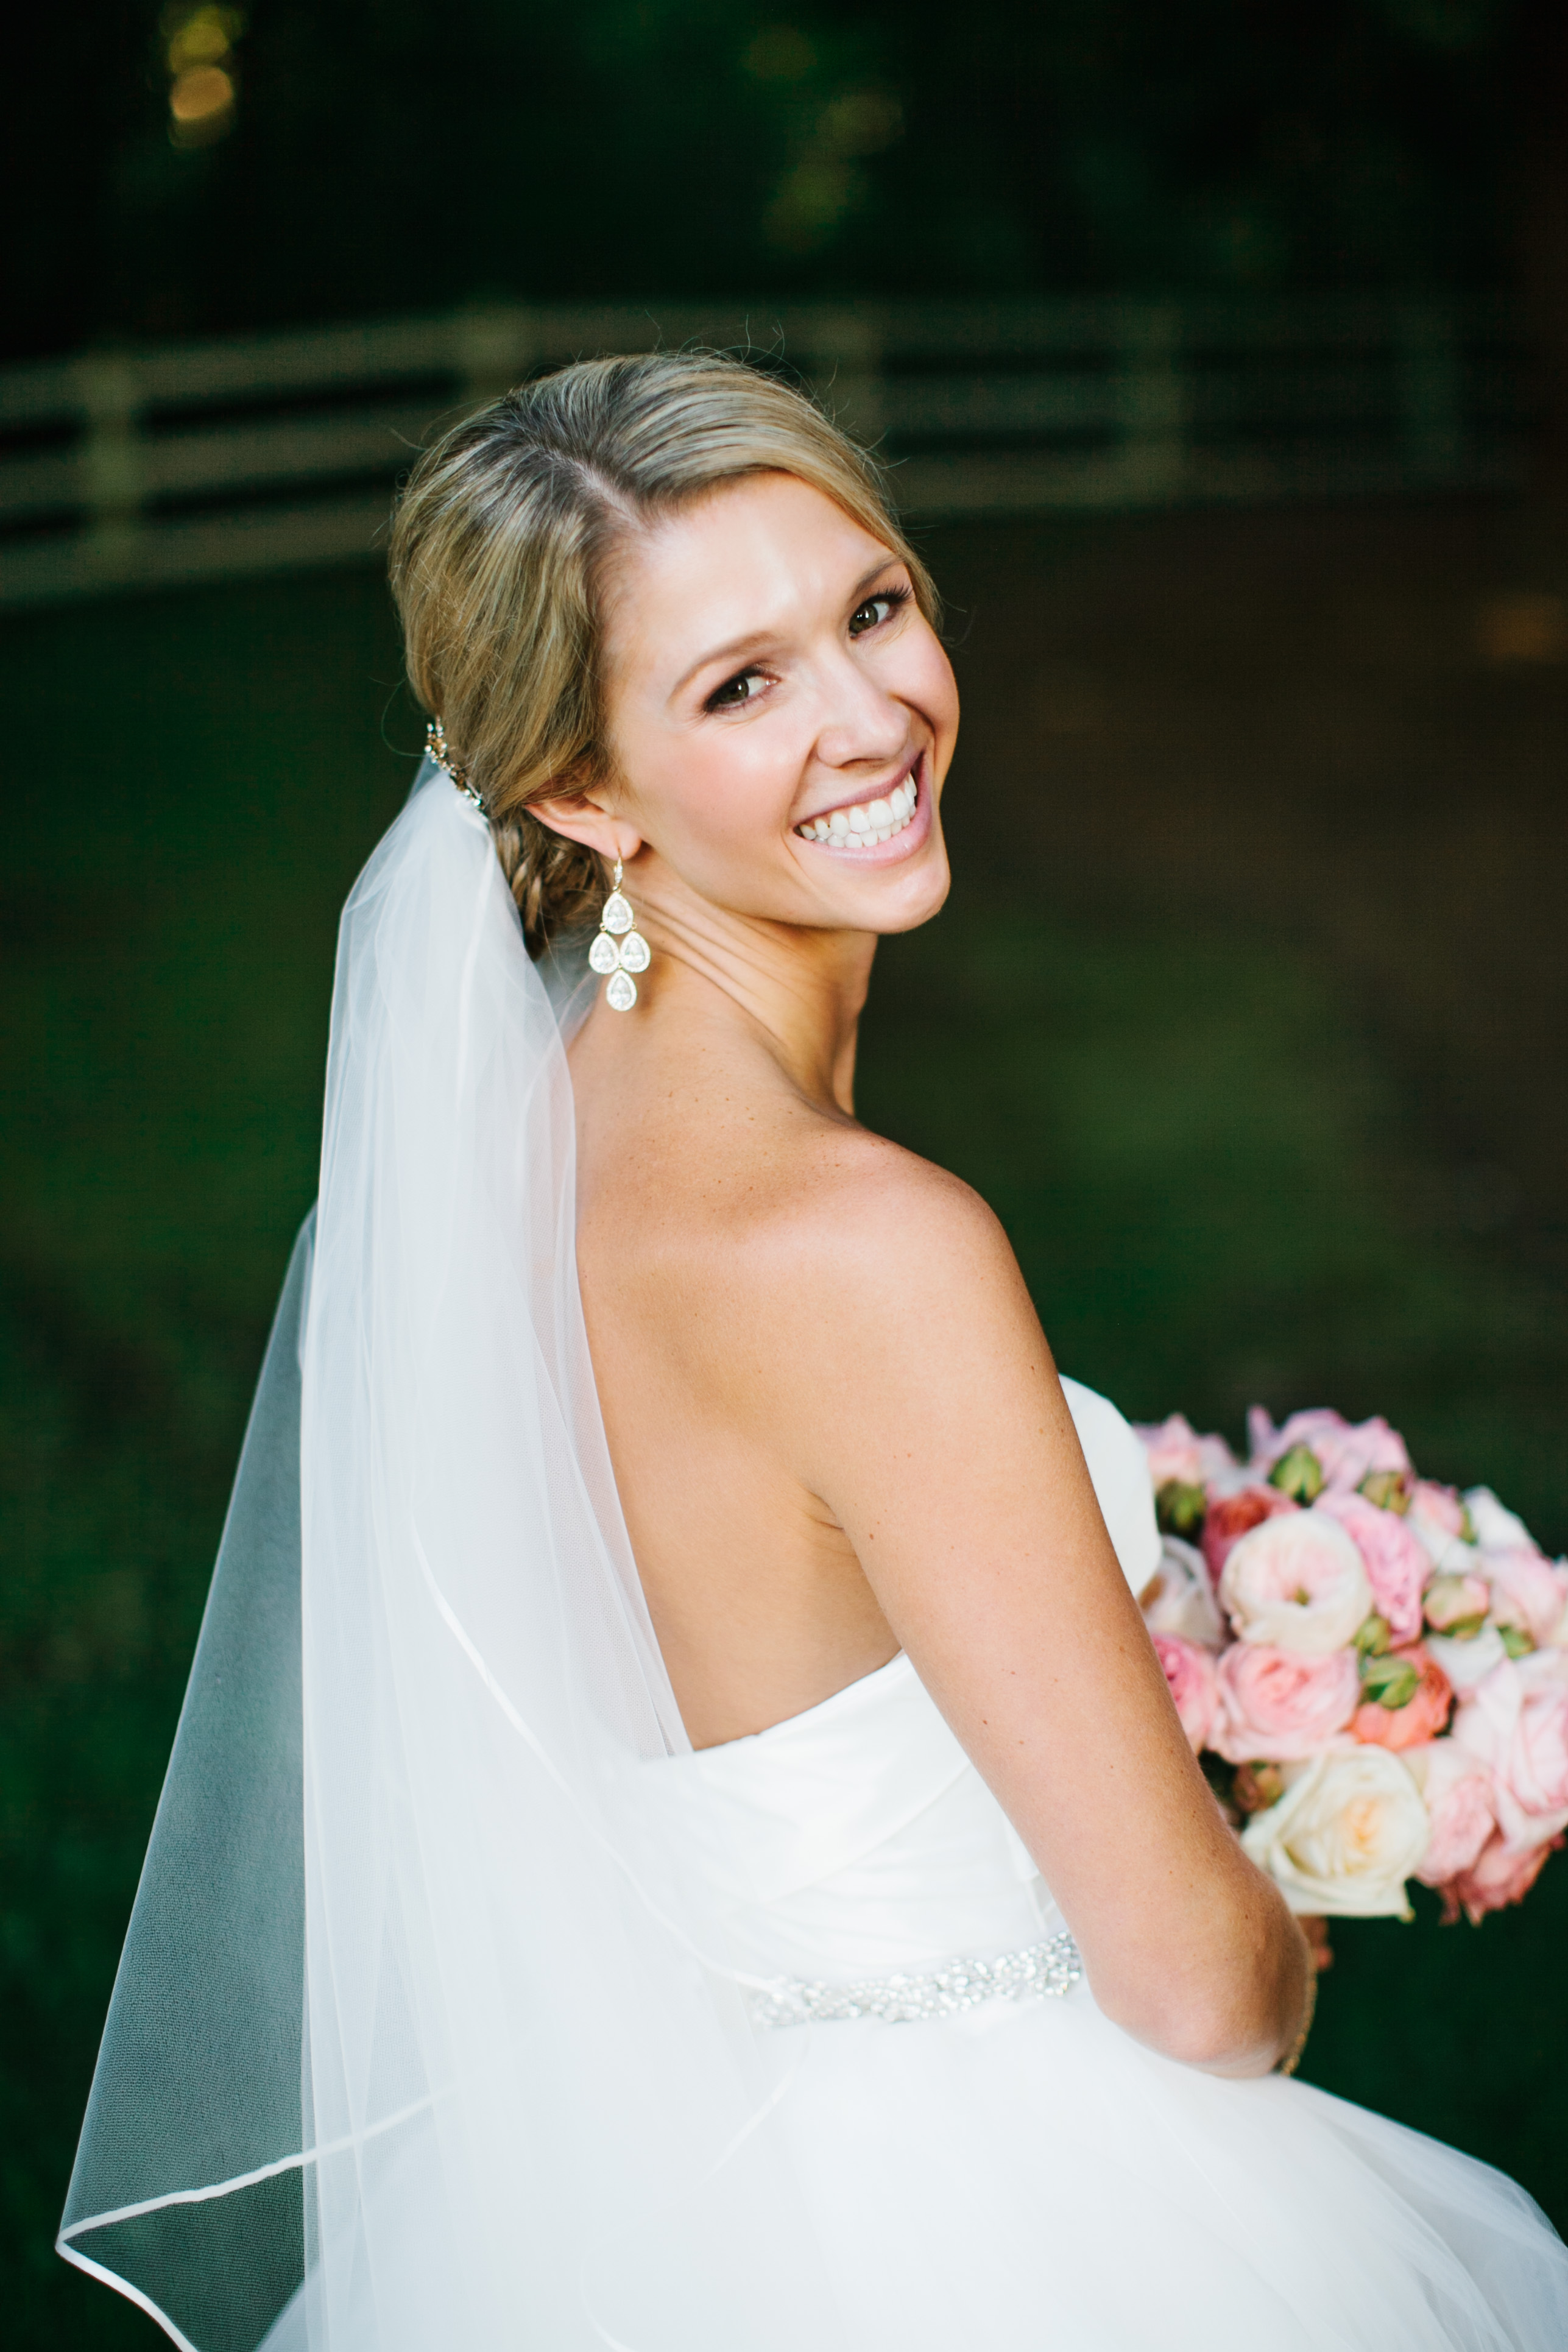 DeLille Cellars Wedding in Woodinville, WA | Bride with light pink floral bouquet | Perfectly Posh Events | Lucid Captures Photography | Flora Nova Design